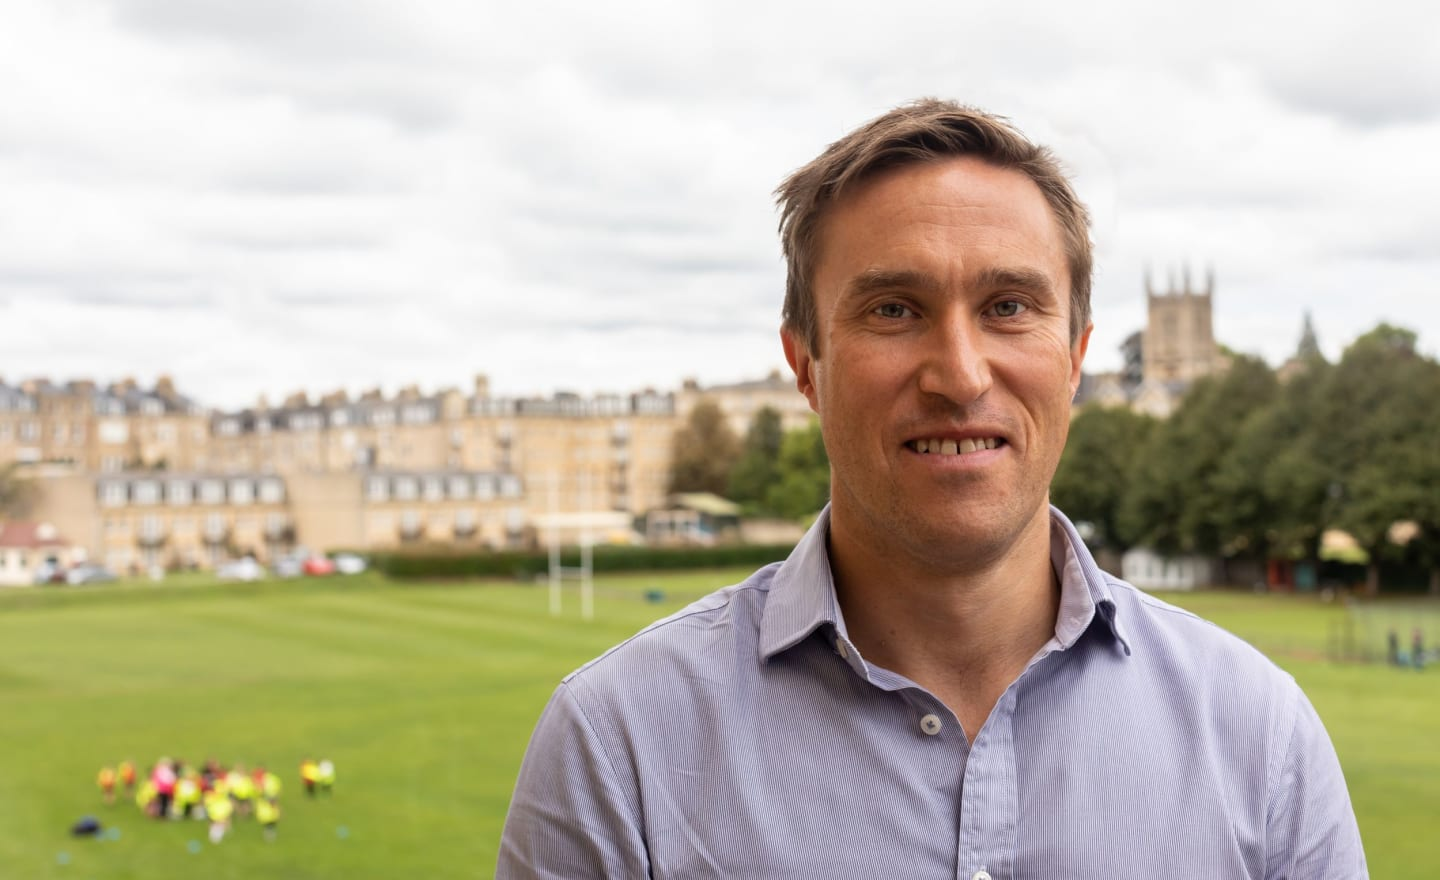 Tarquin McDonald - Represents Bath Rugby on the board of trustees